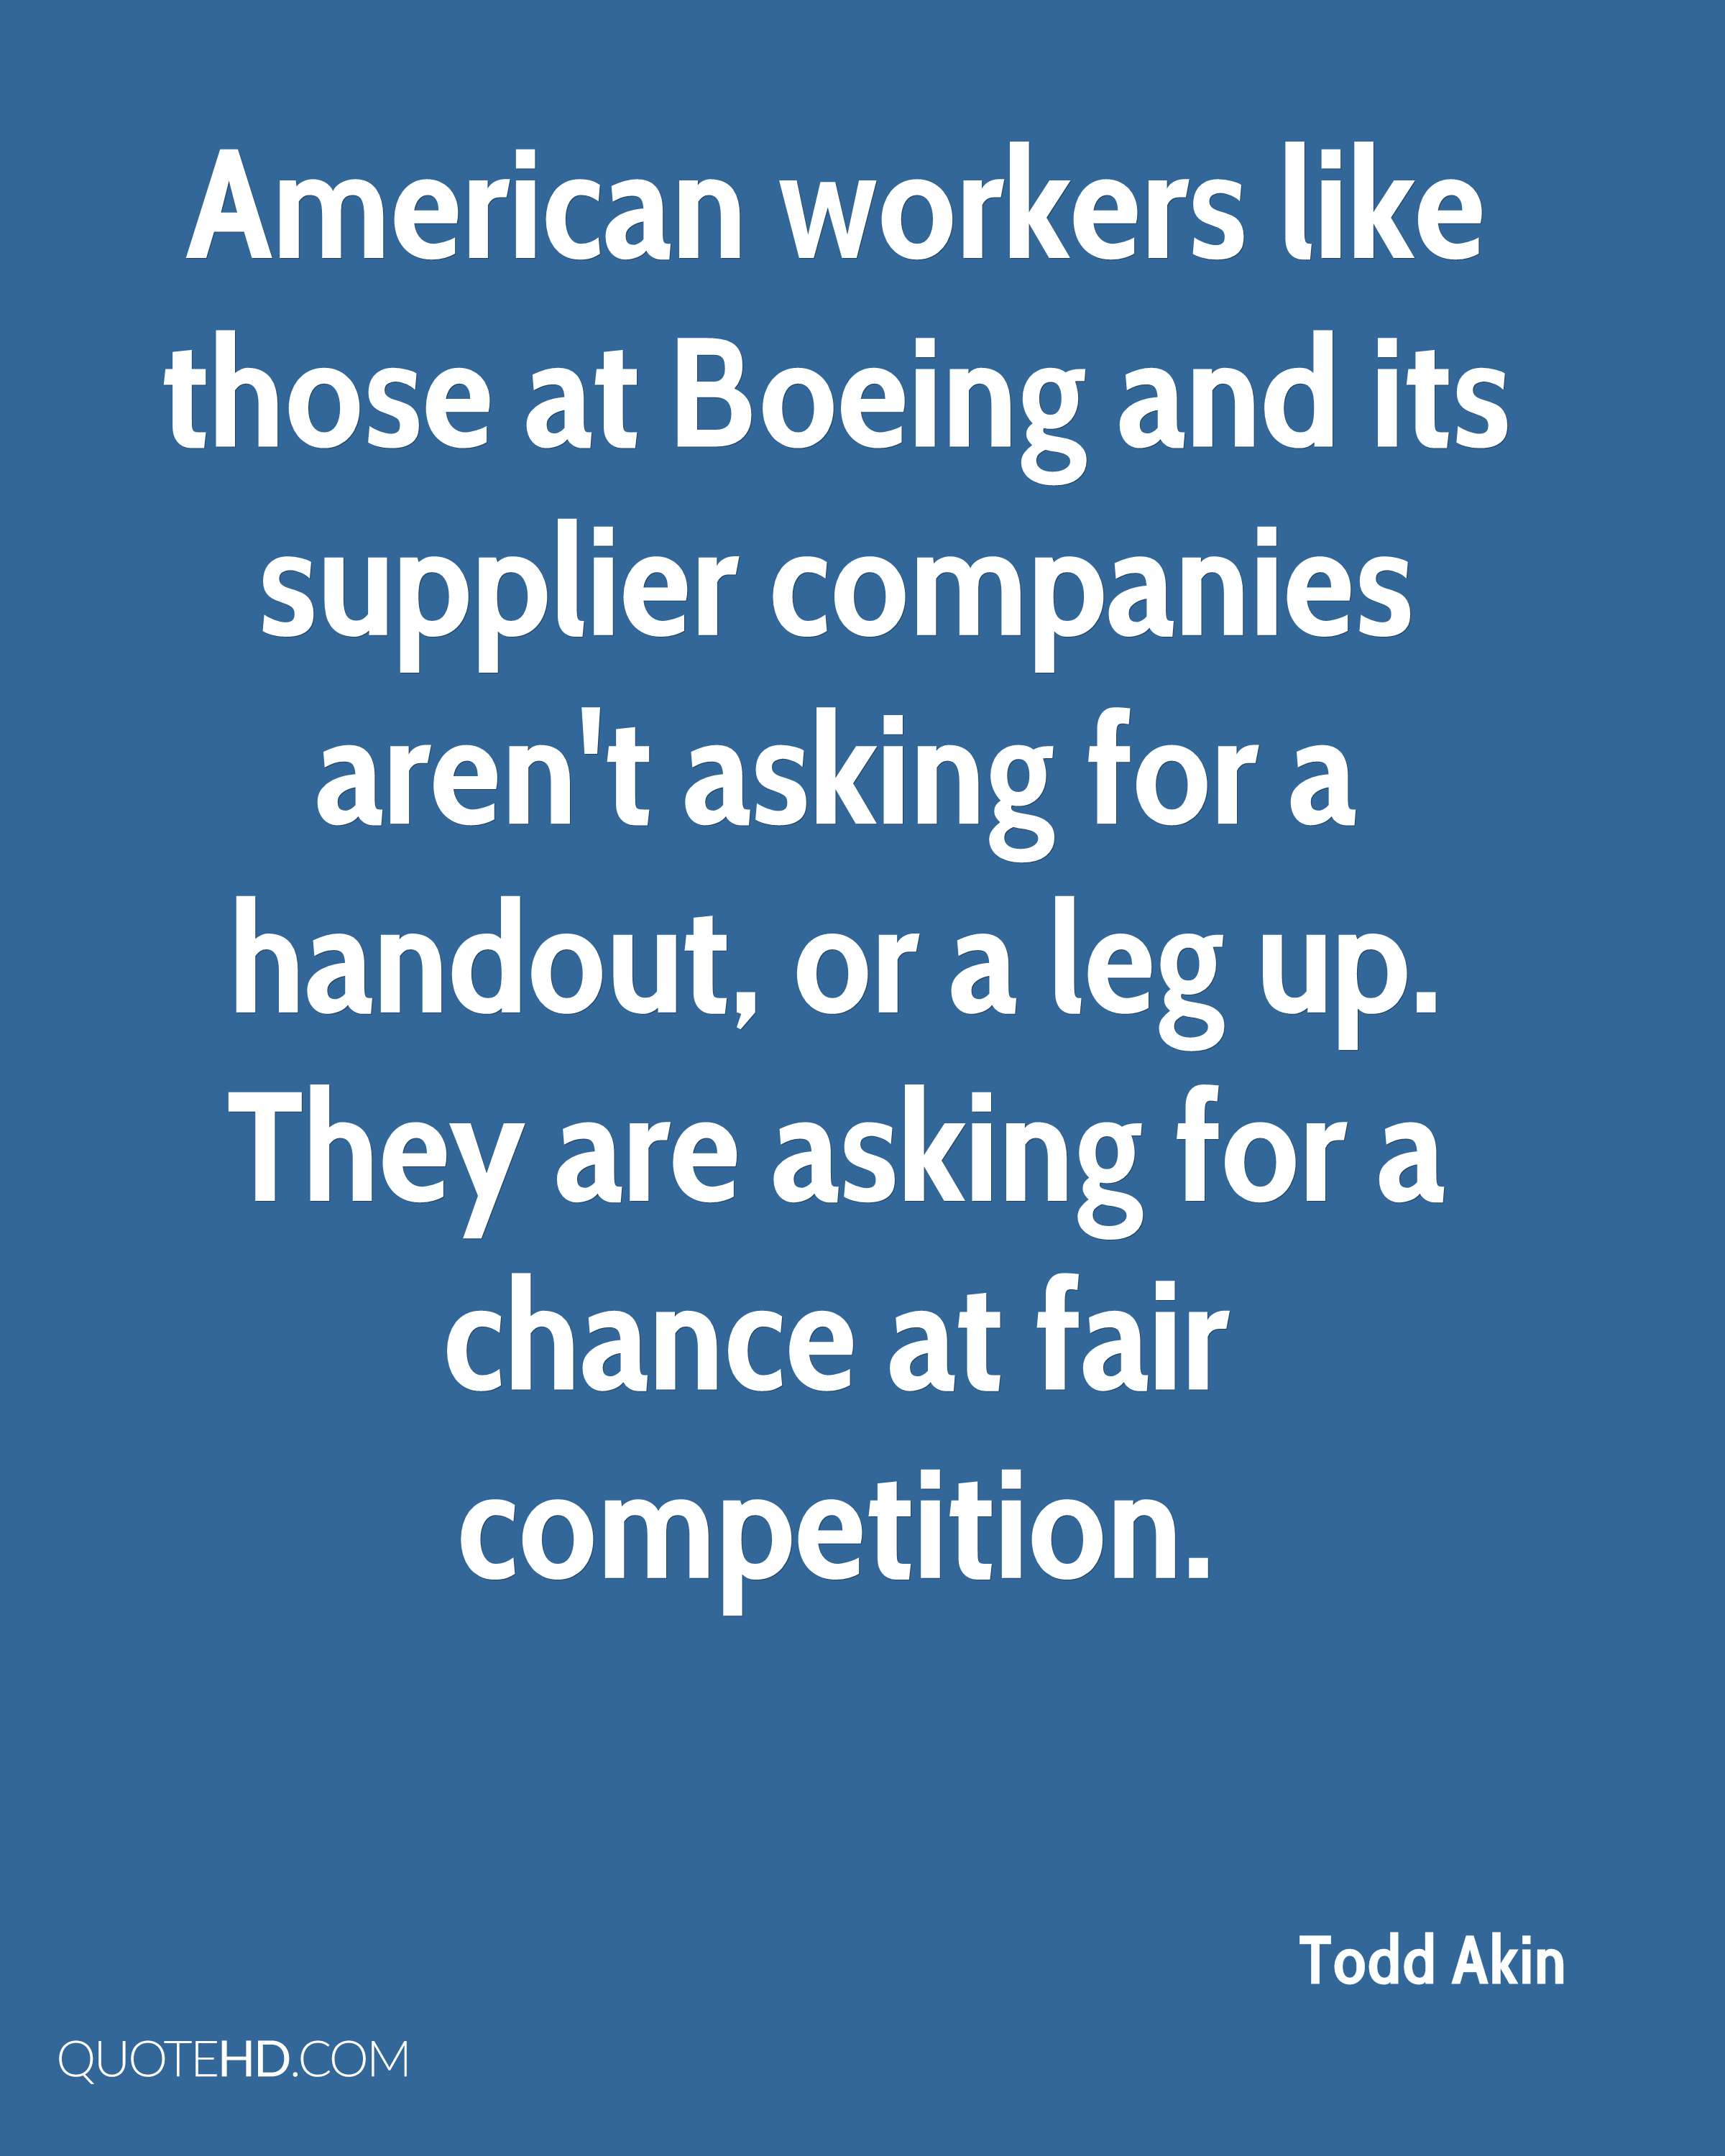 American workers like those at Boeing and its supplier companies aren't asking for a handout, or a leg up. They are asking for a chance at fair competition.